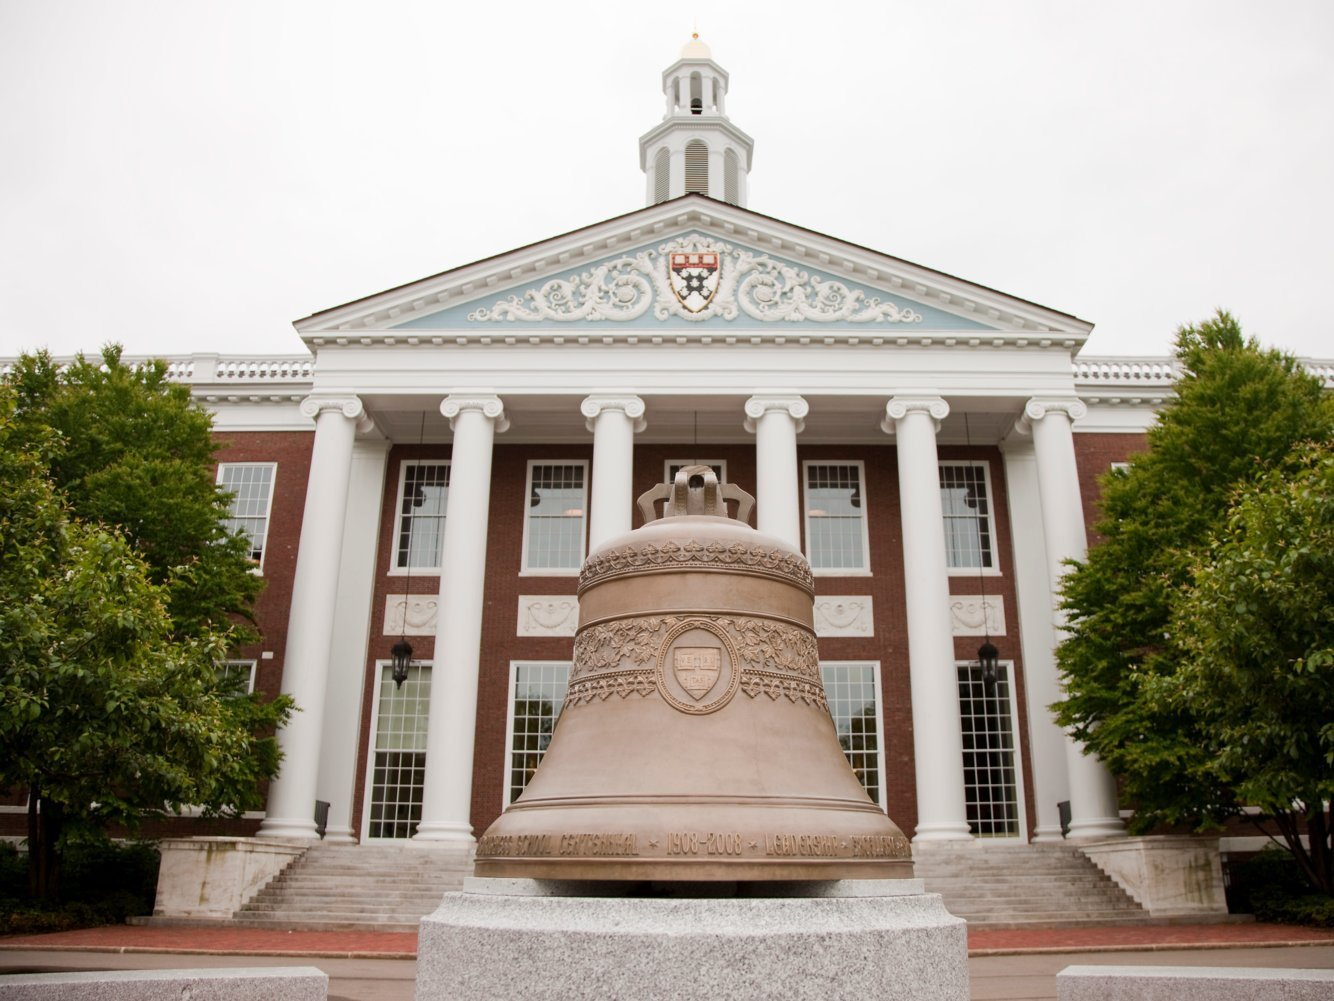 Harvard Business School offers online classes that run parallel to its MBA program — for a fraction of the cost. 3 career-changers who took the courses explain why they don't regret skipping out on a degree.